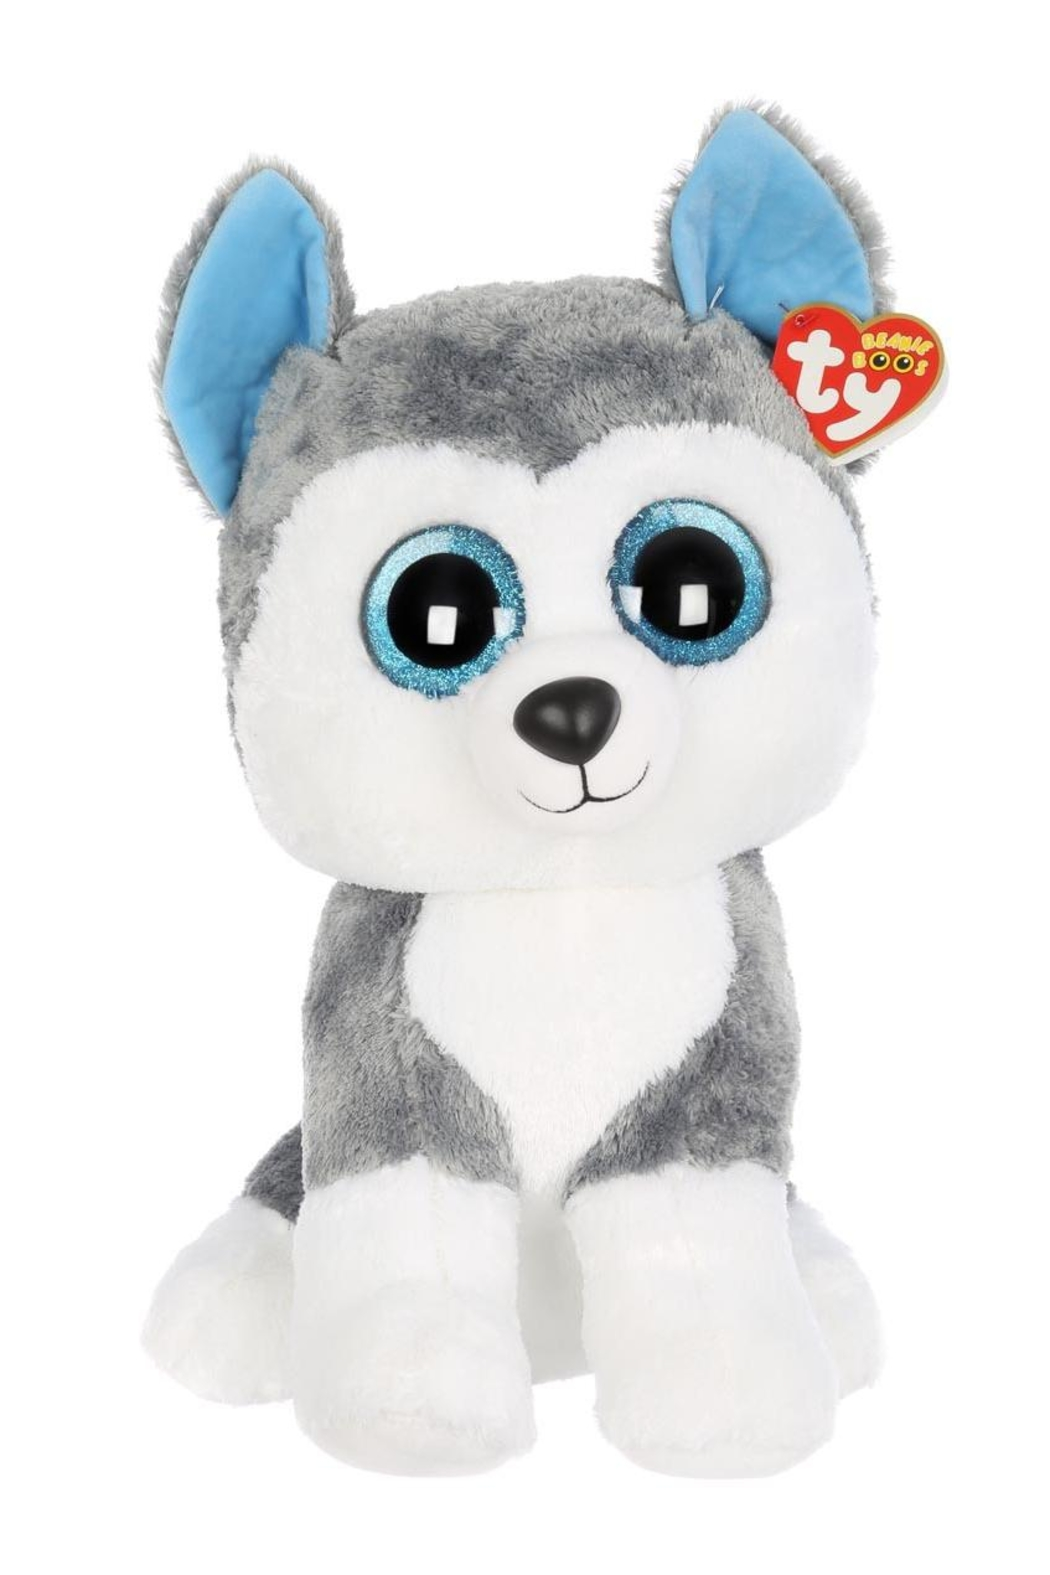 e779a187e87 Other Beanie Boo Slush Toy from Florida by Not Your Typical Dress ...